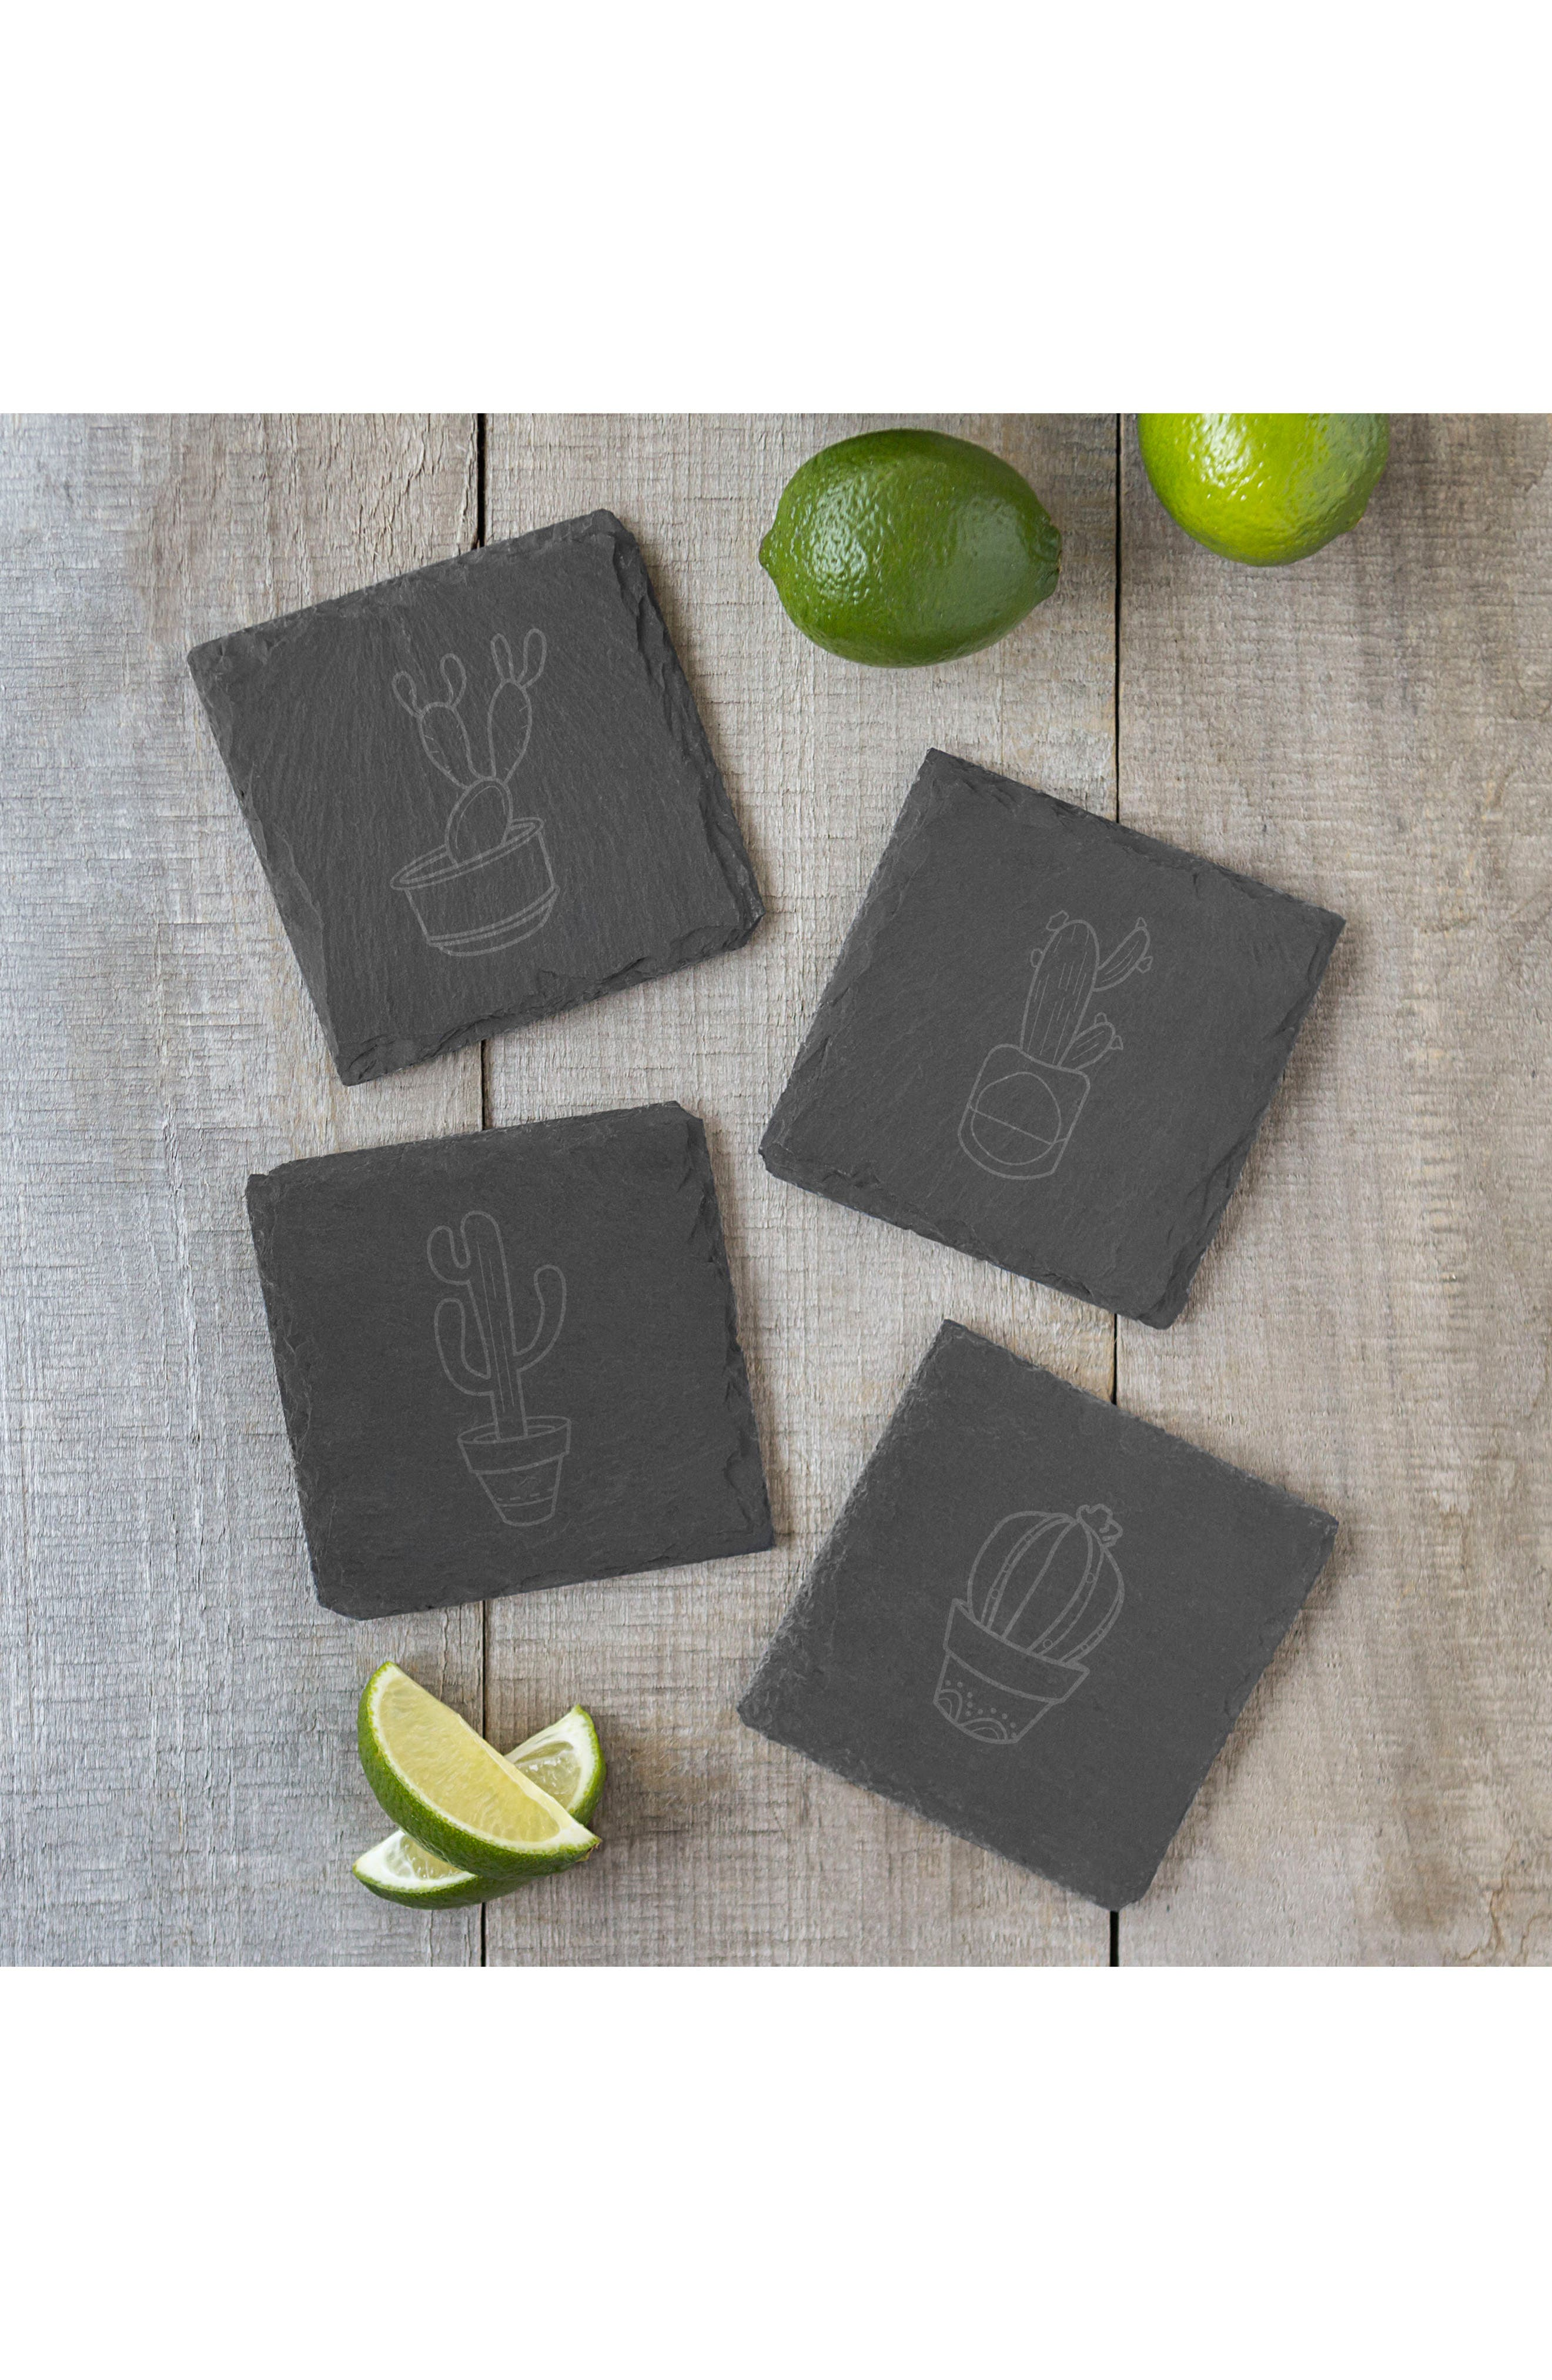 CATHY'S CONCEPTS,                             Cactus Set of 4 Coasters,                             Alternate thumbnail 6, color,                             002